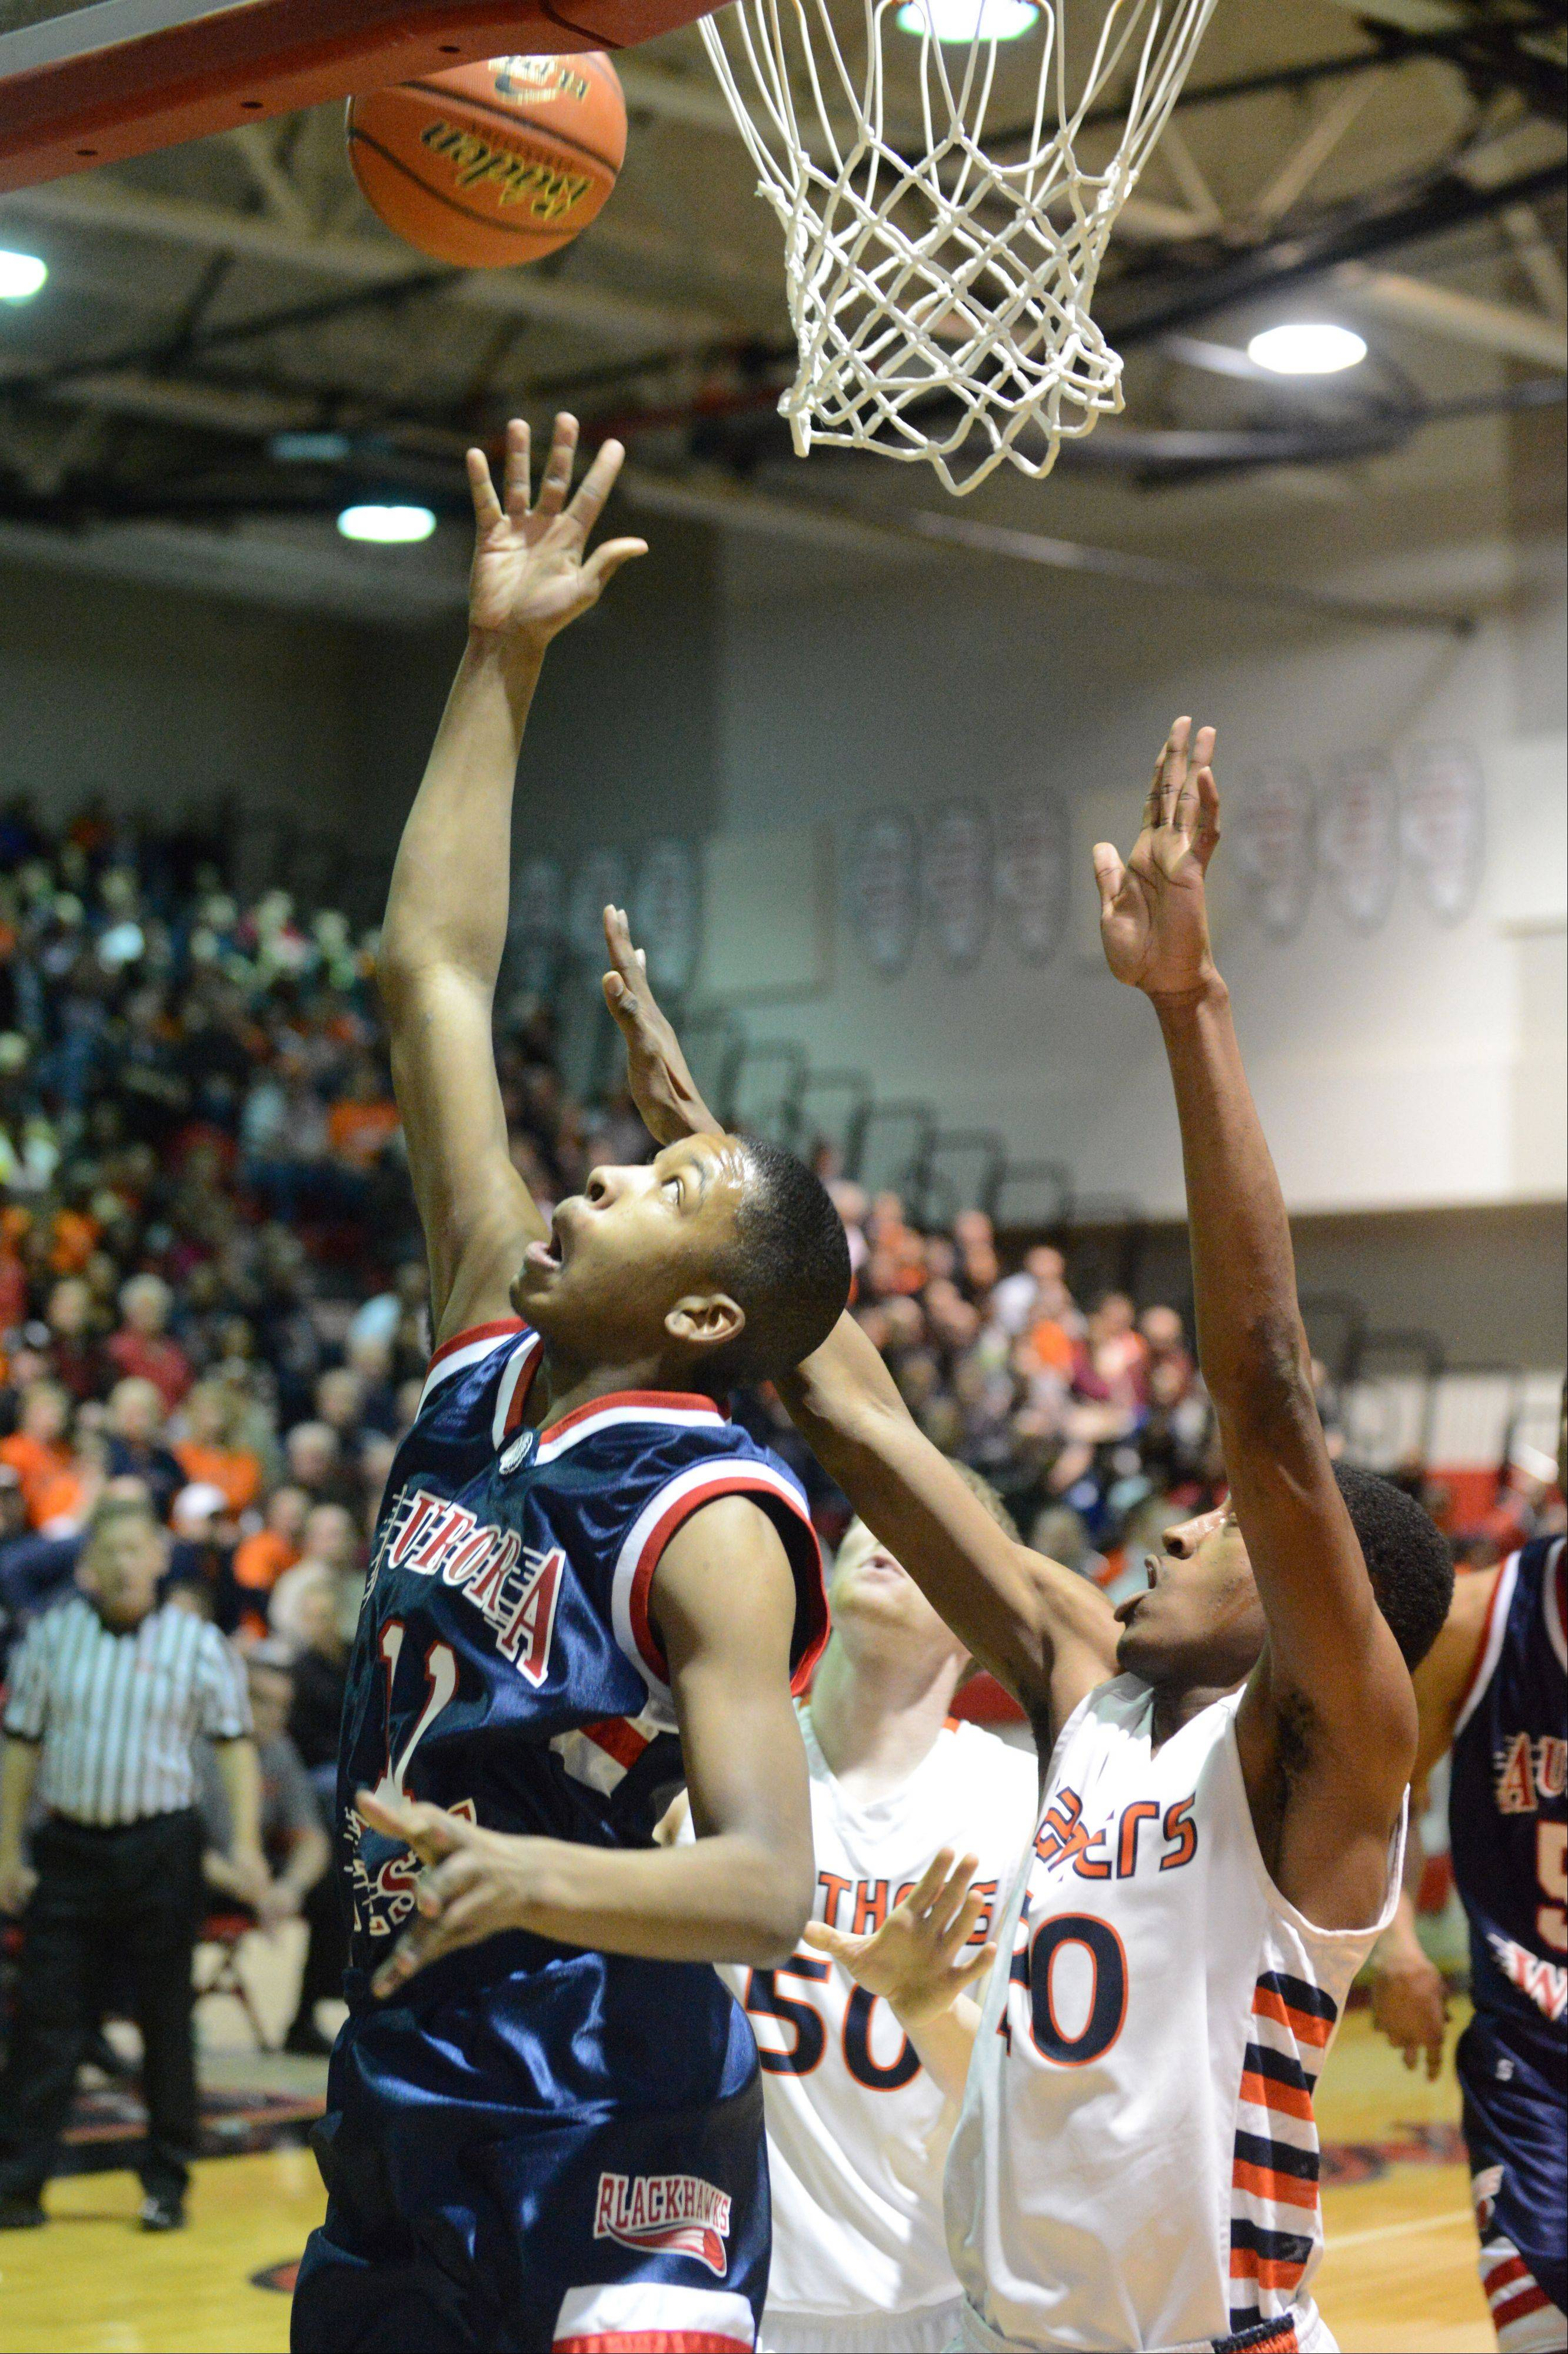 Jontrel Walker of West Aurora takes a shot.